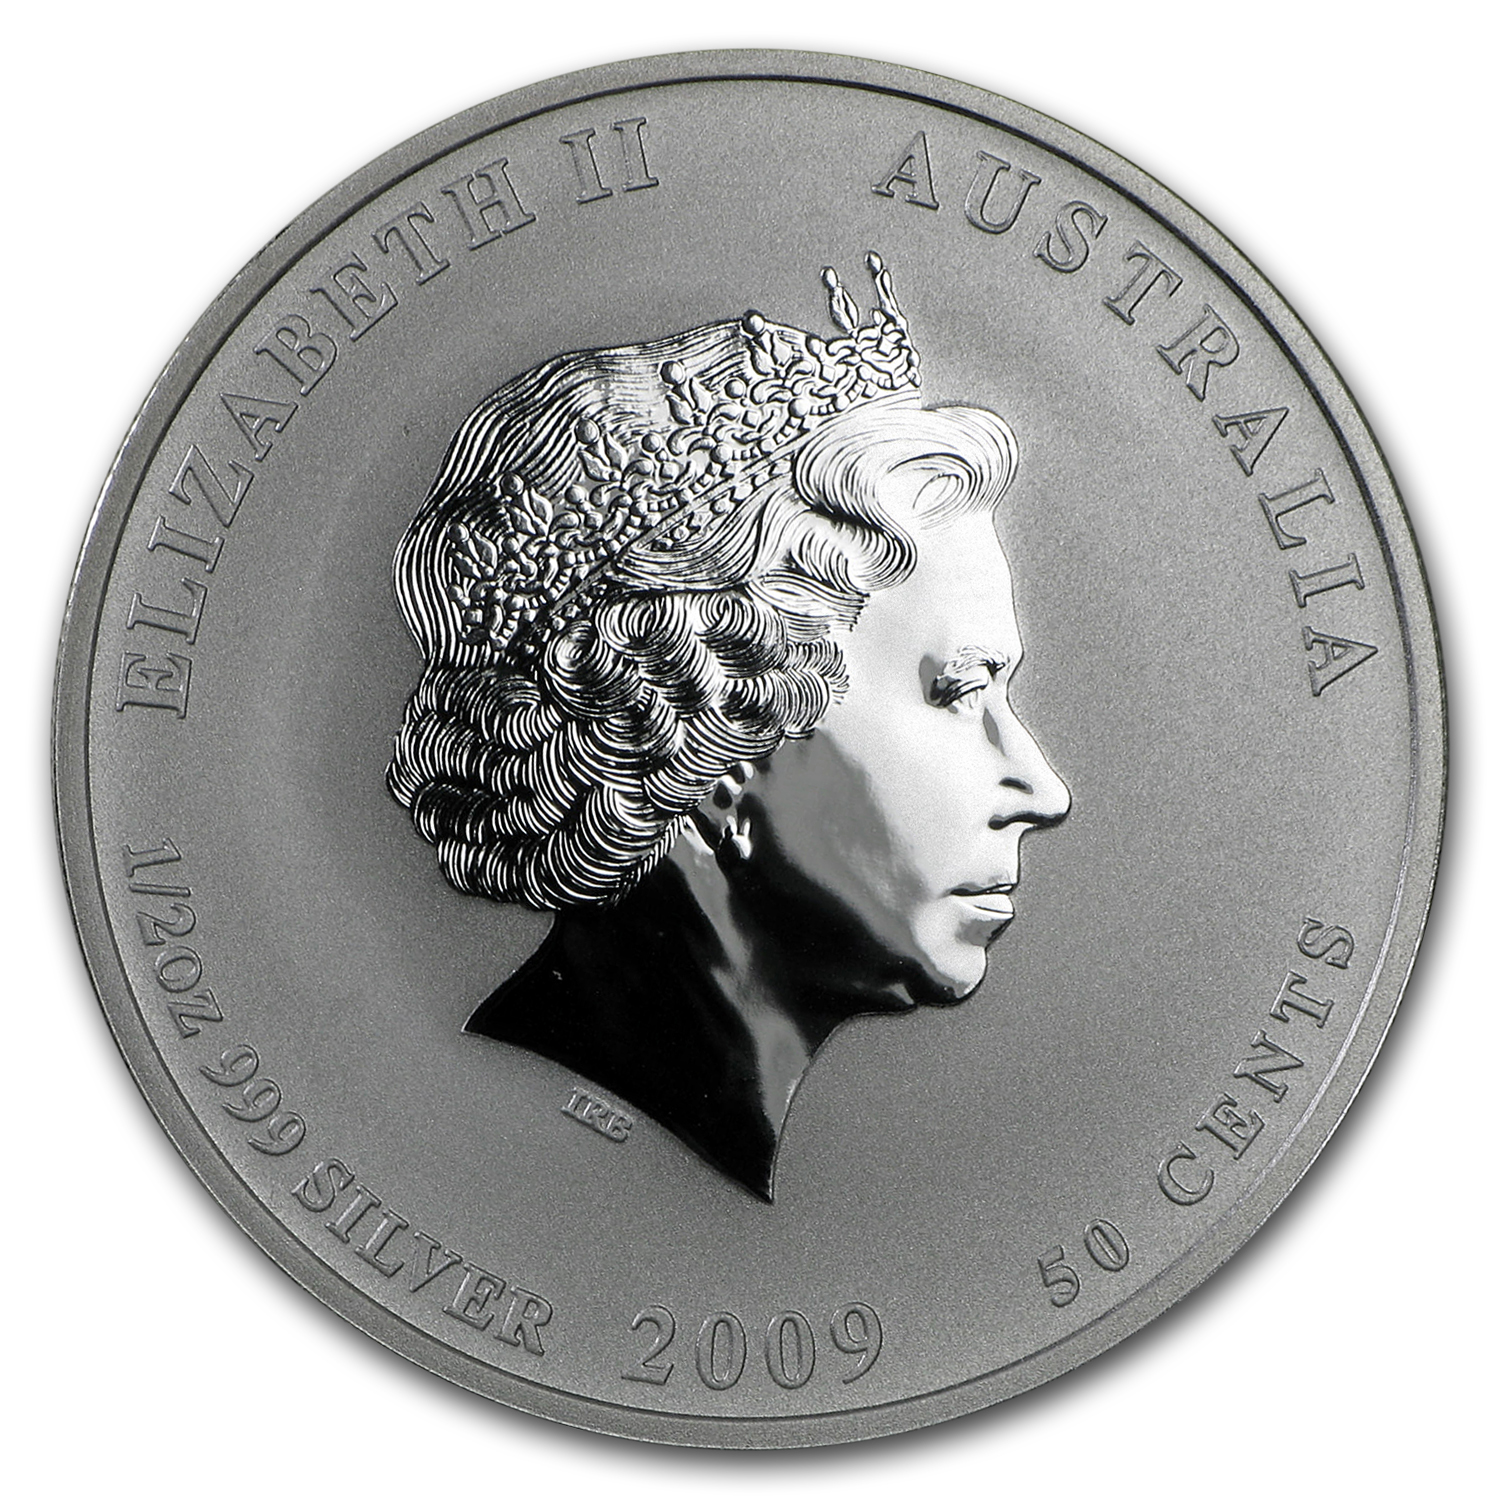 2009 Australia 1/2 oz Silver Year of the Ox BU (Series II)